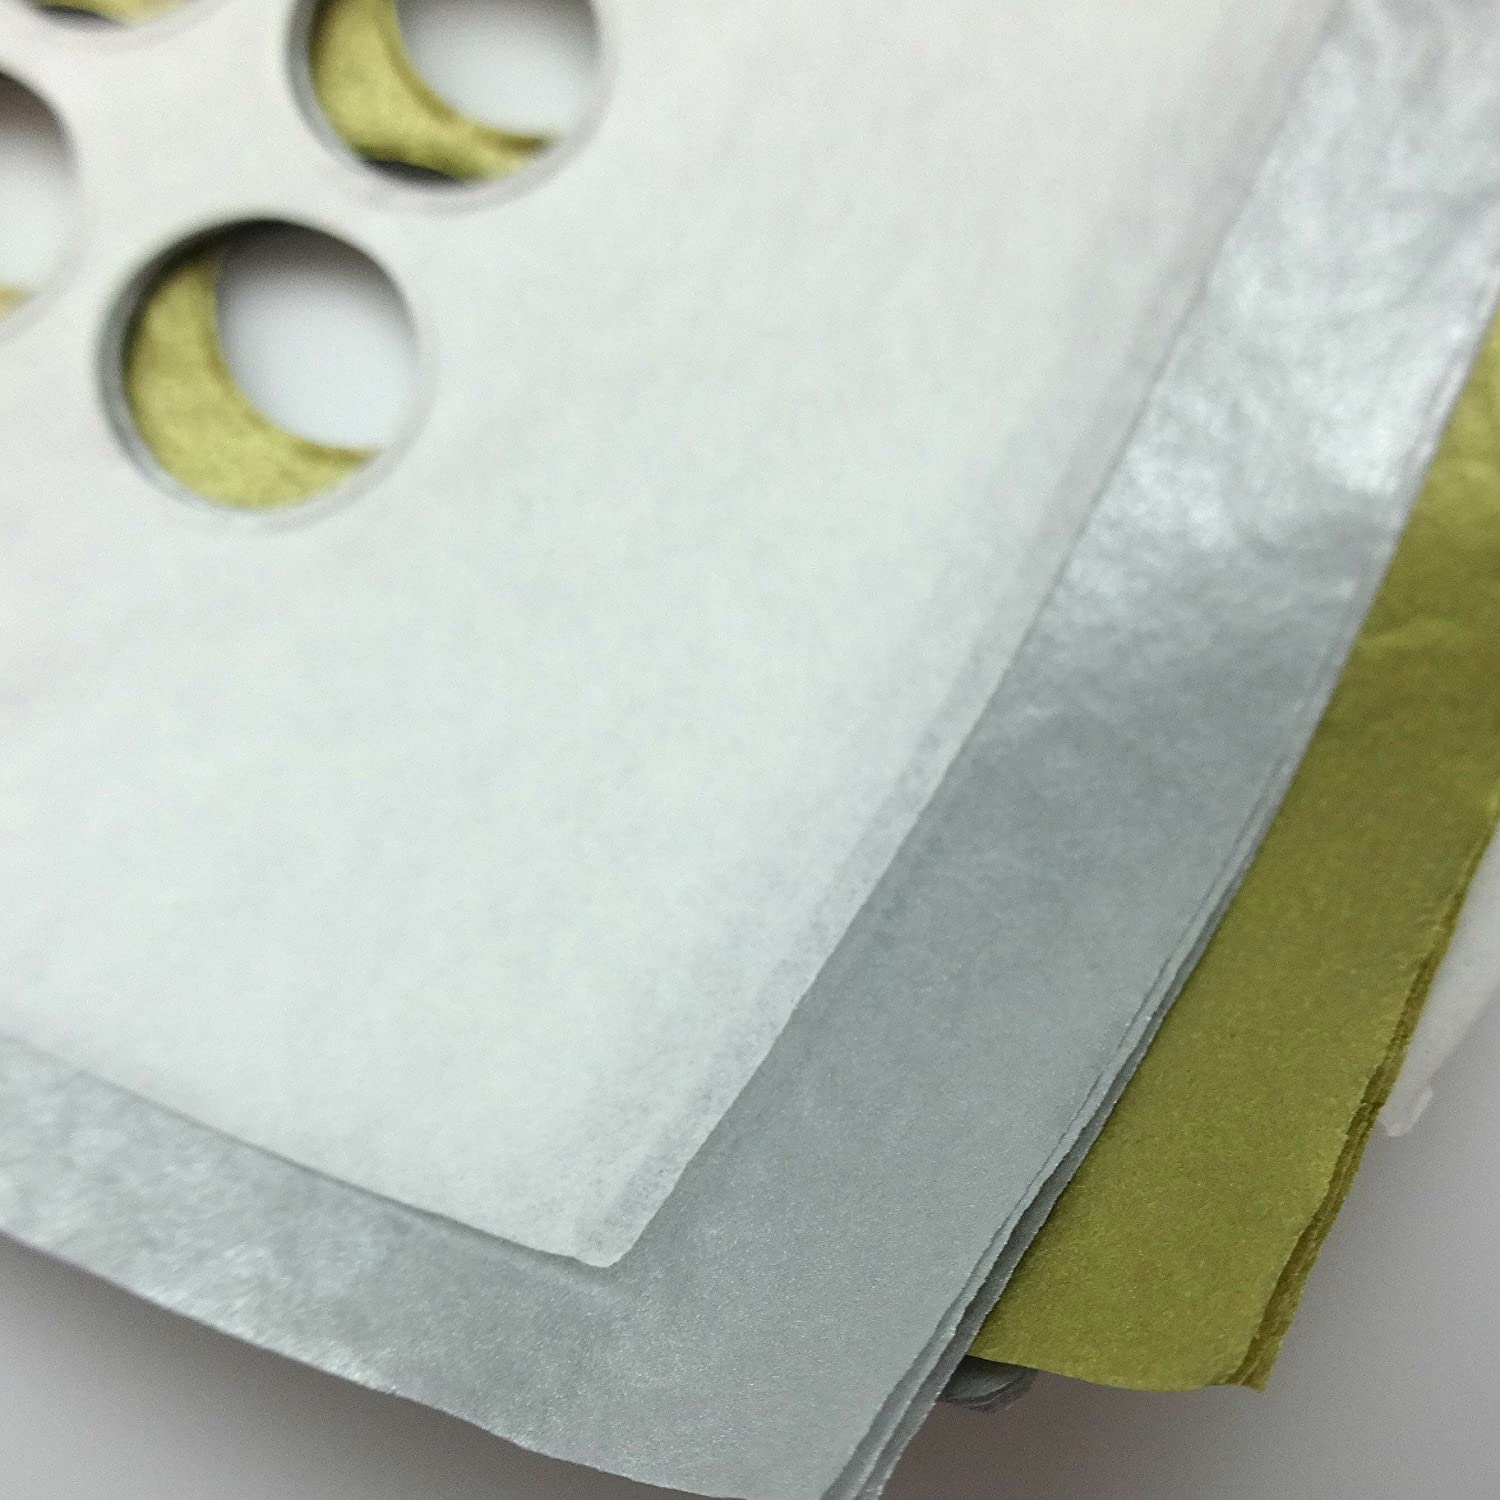 10 Sheets of Awesome Tissue Paper with Holes 1//2 Inch Holes